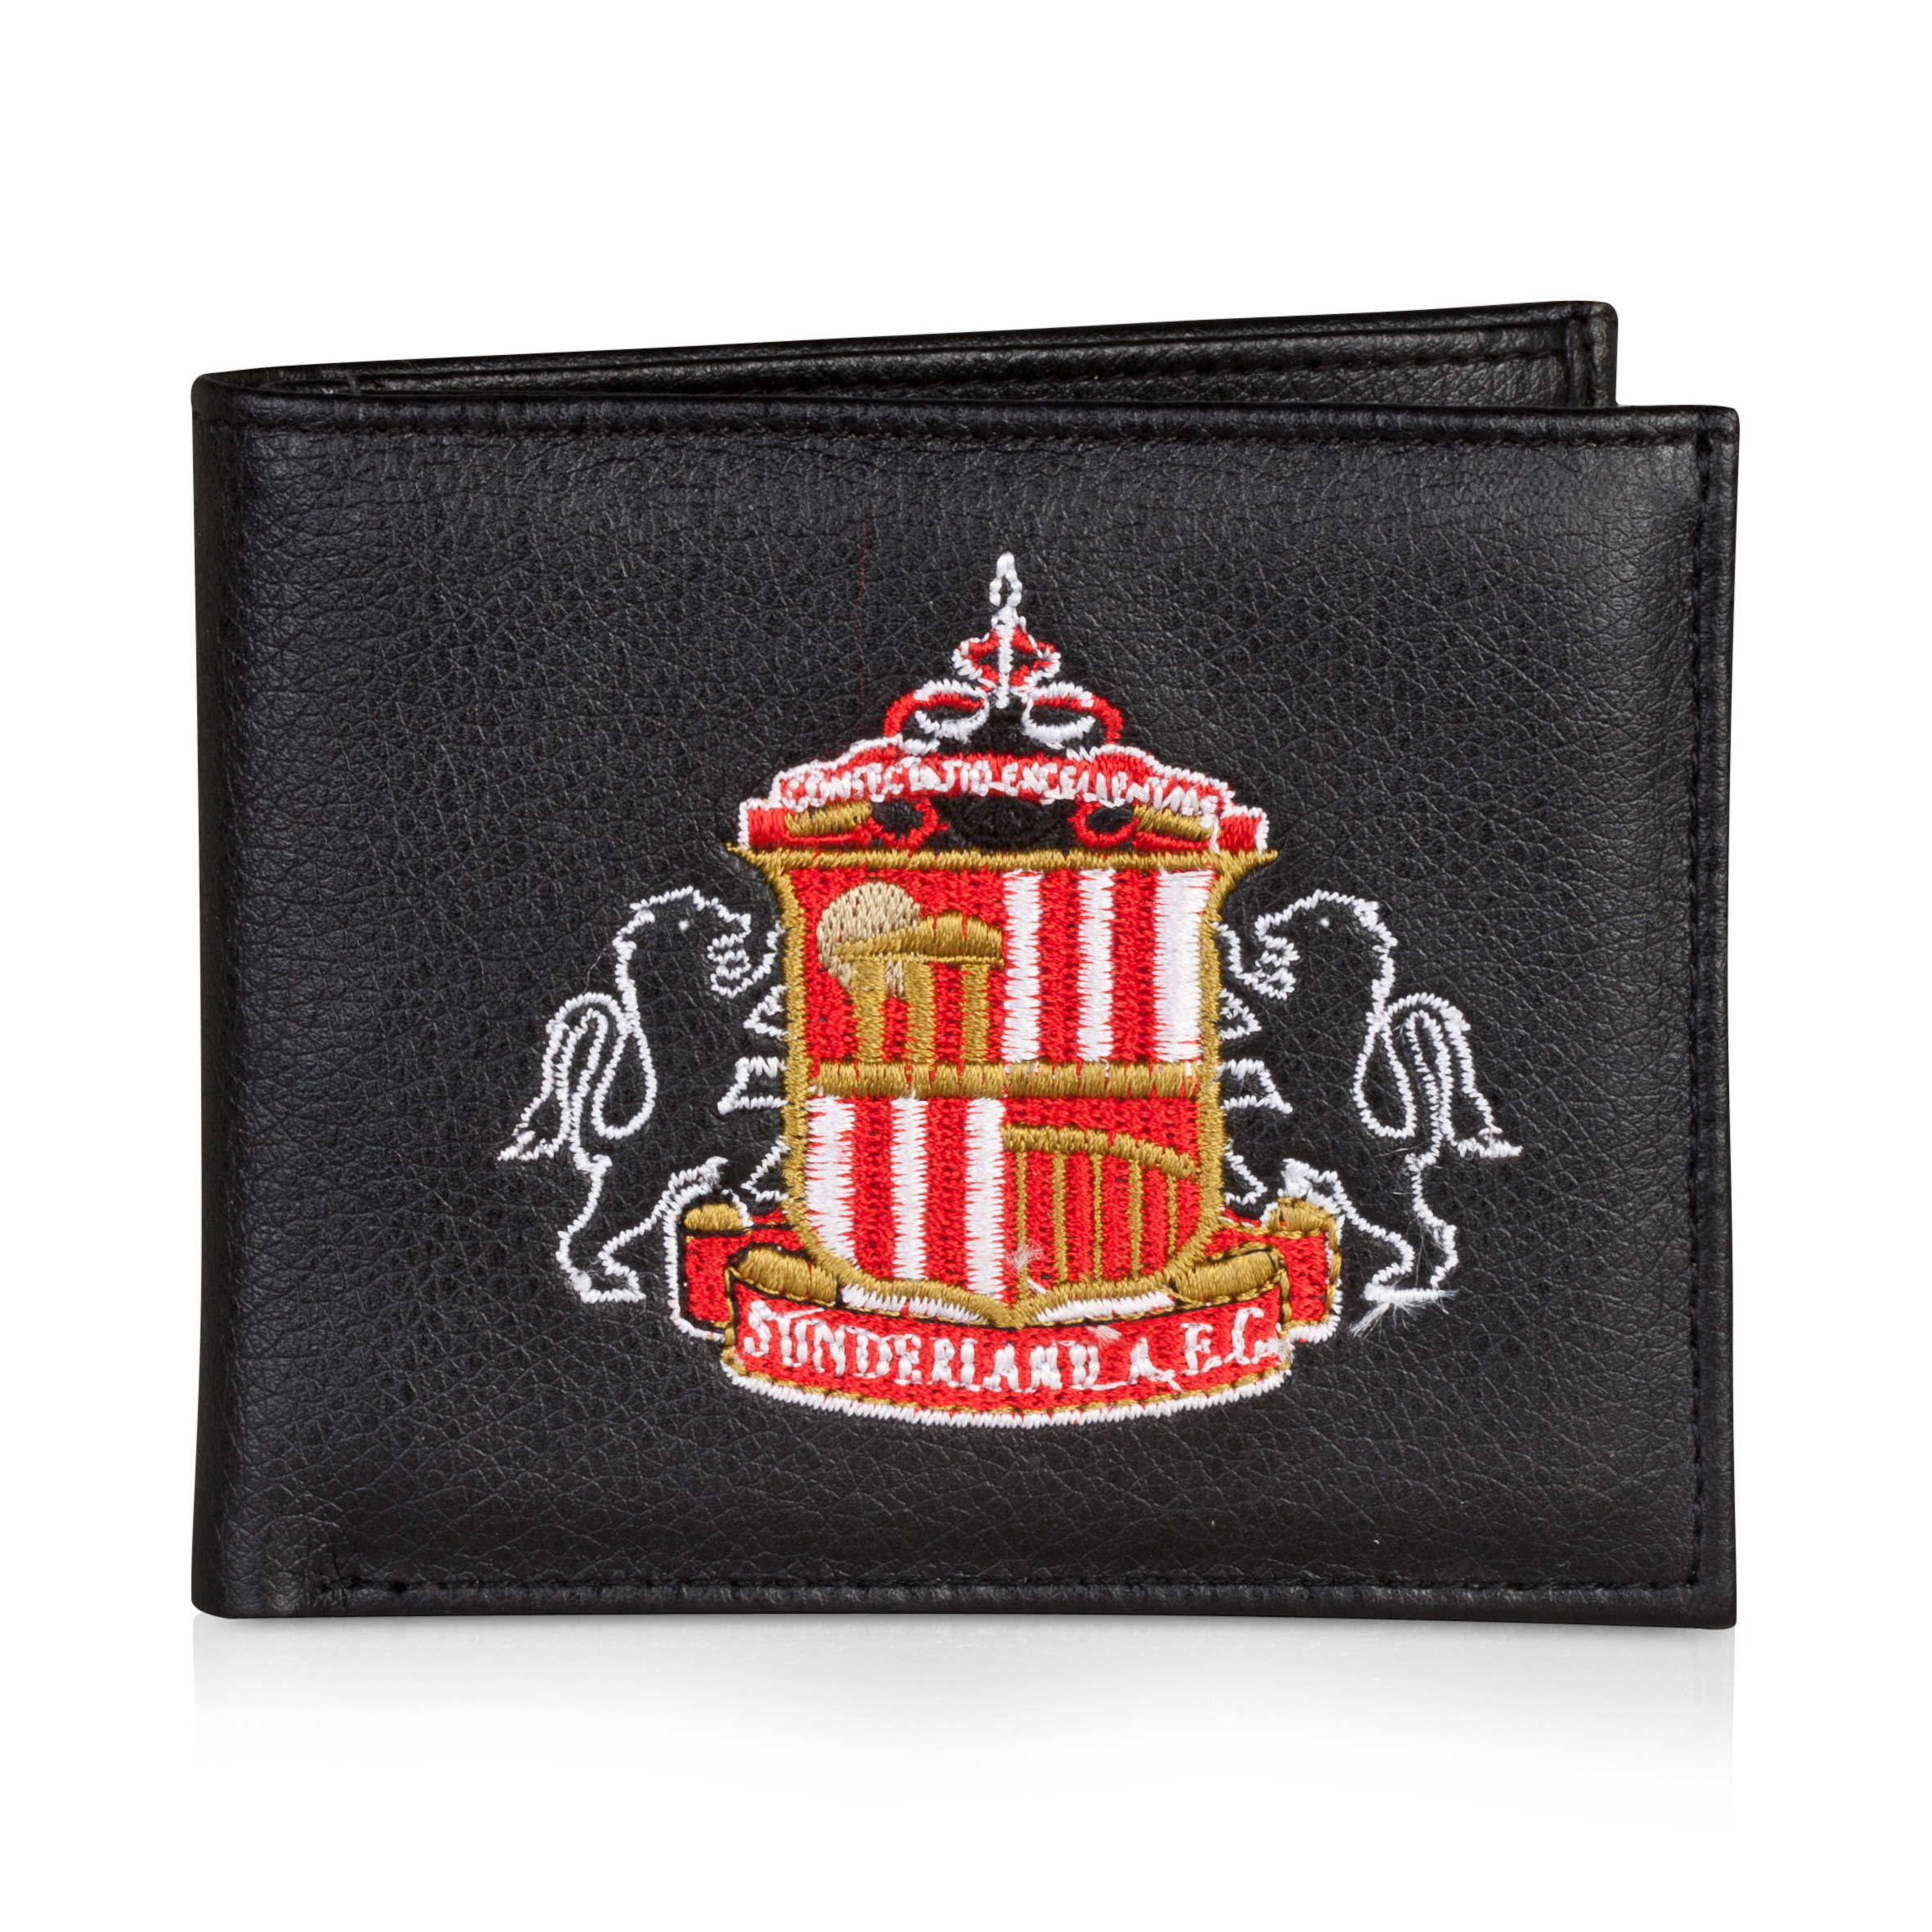 Sunderland Embroidered Crest Wallet - Black